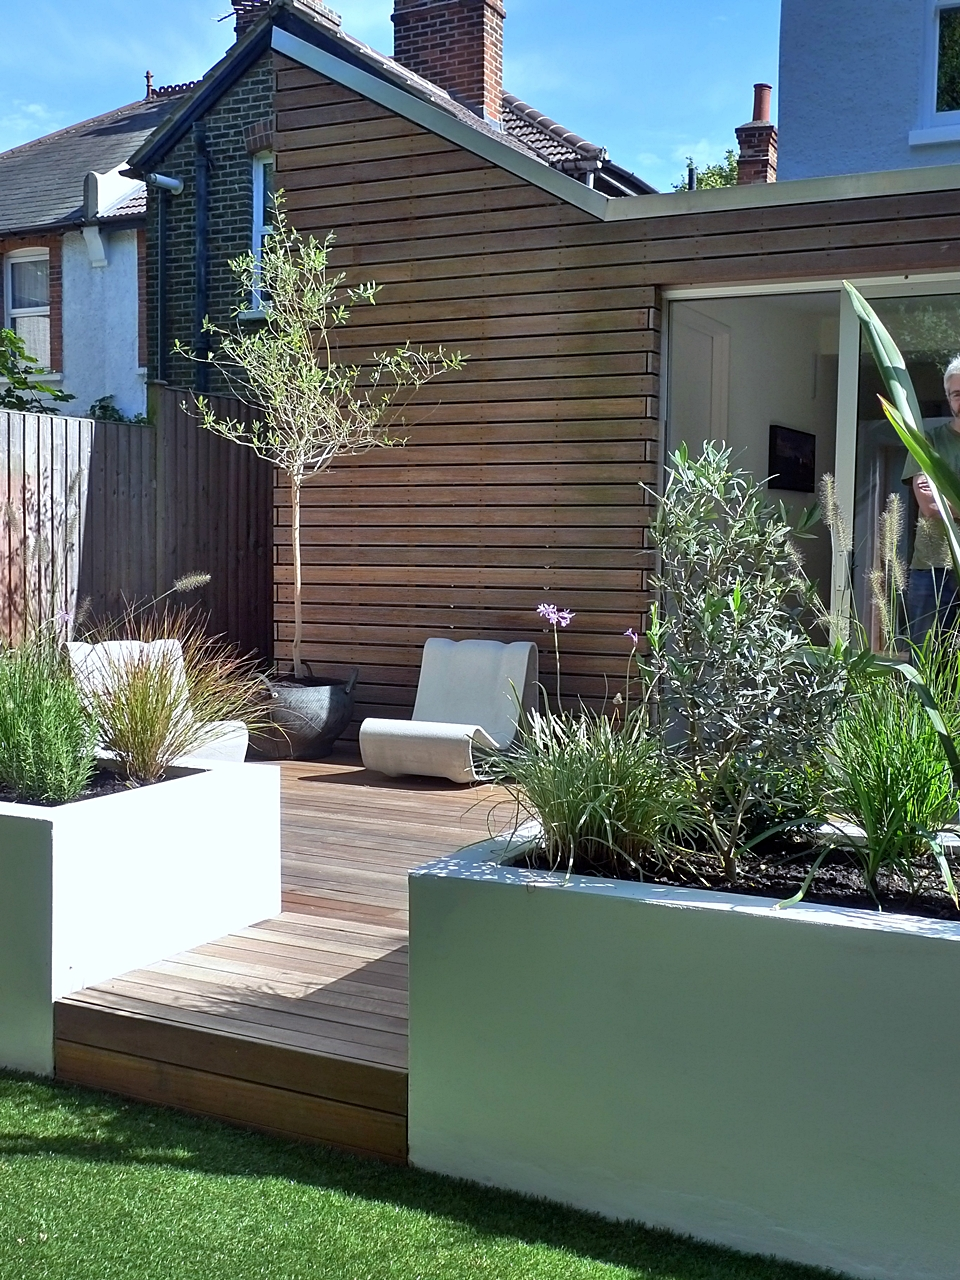 Modern style and design in a london garden london garden for Modern garden